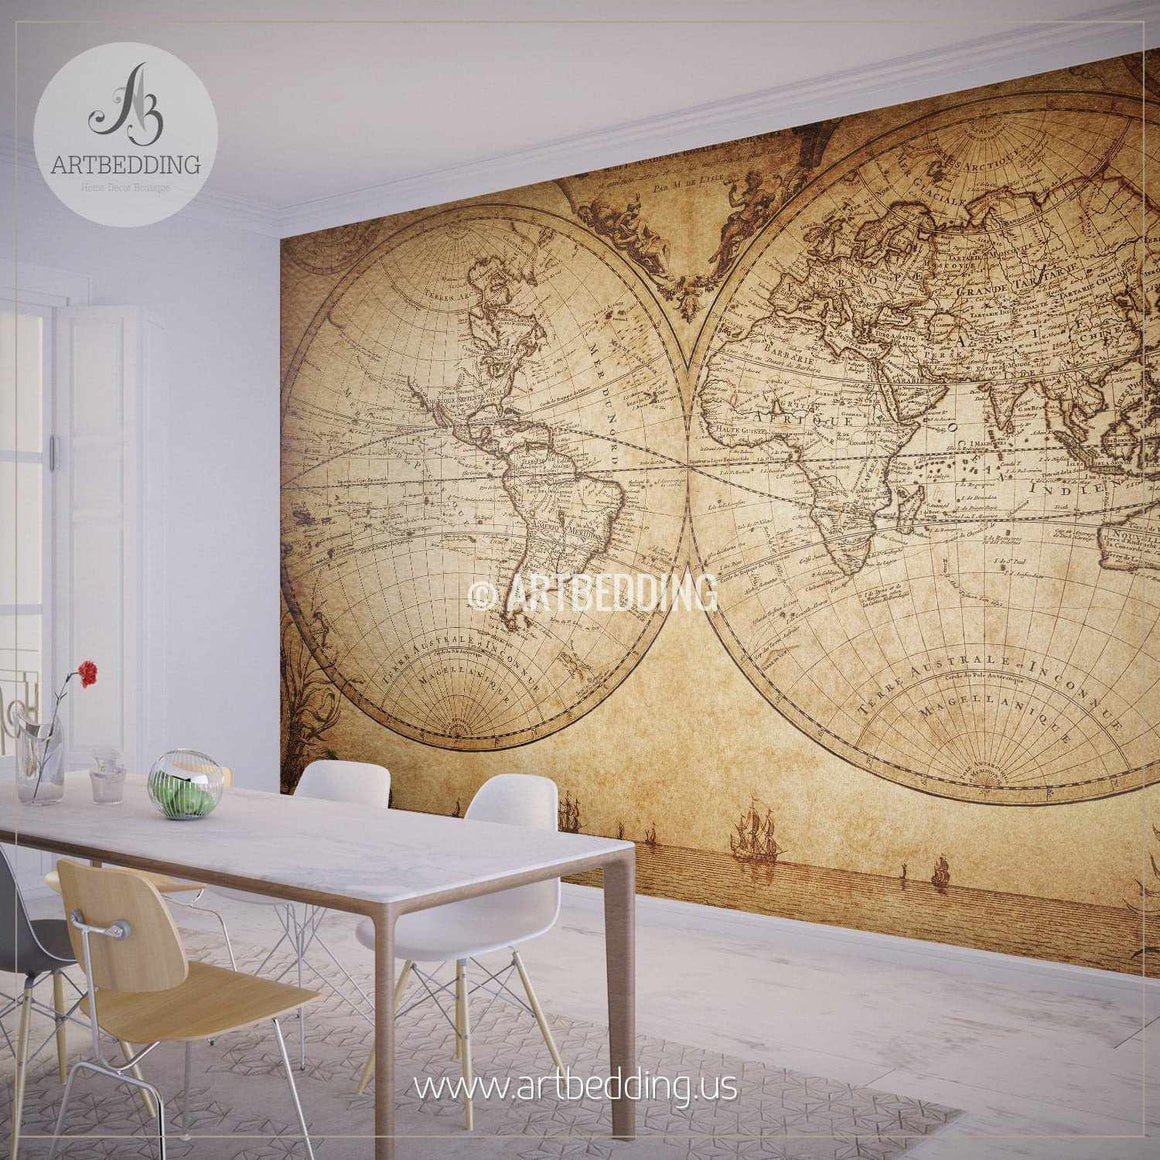 Vintage Map Wall Mural, Self Adhesive Peel & Stick Photo Mural, Atlas wall mural, mural home decor wall mural